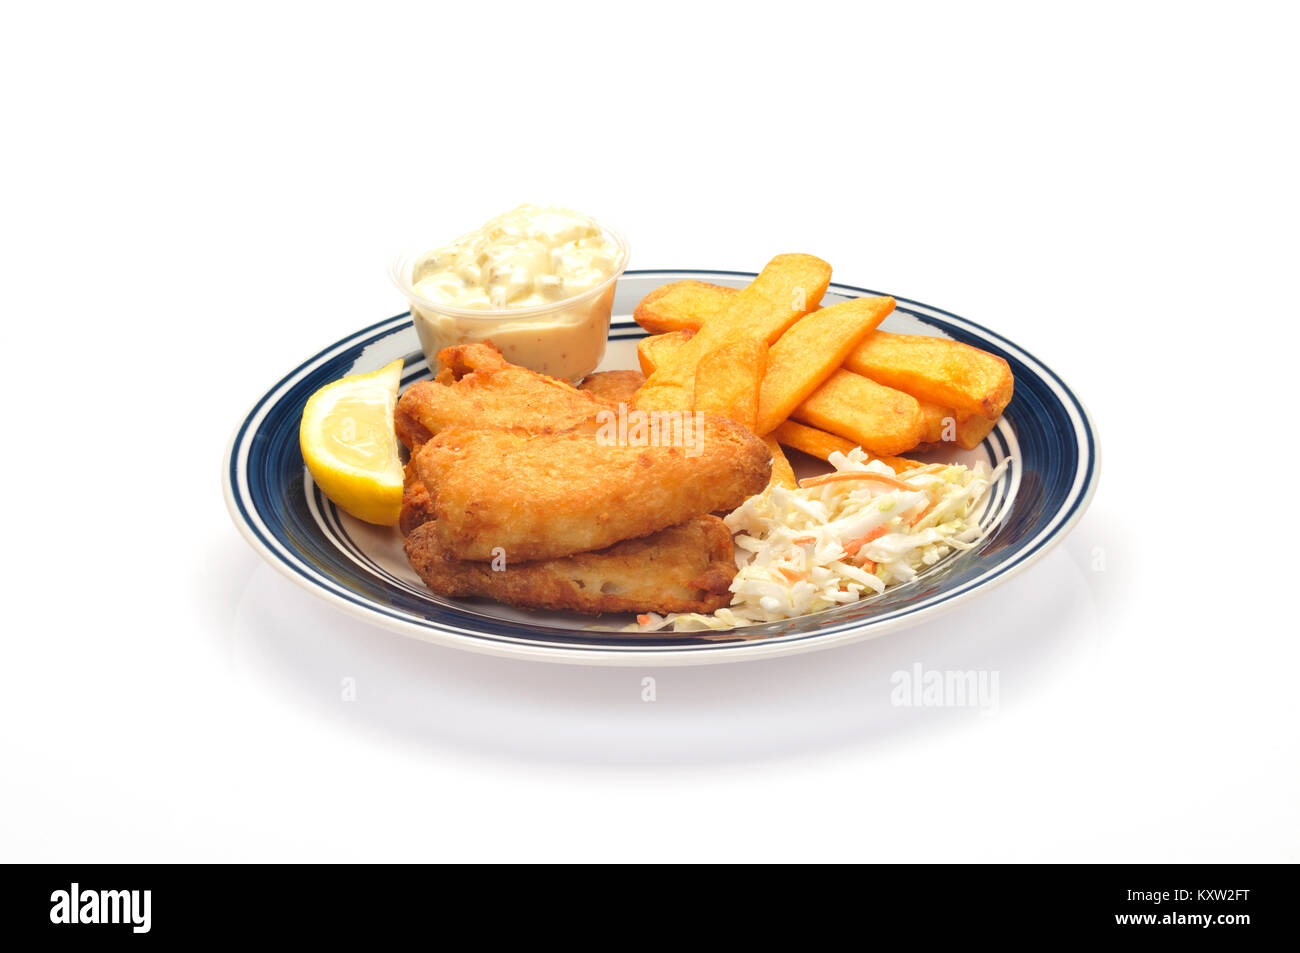 Fried fish and chips with coleslaw a wedge of lemon and tartar sauce on blue and white plate on white background - Stock Image